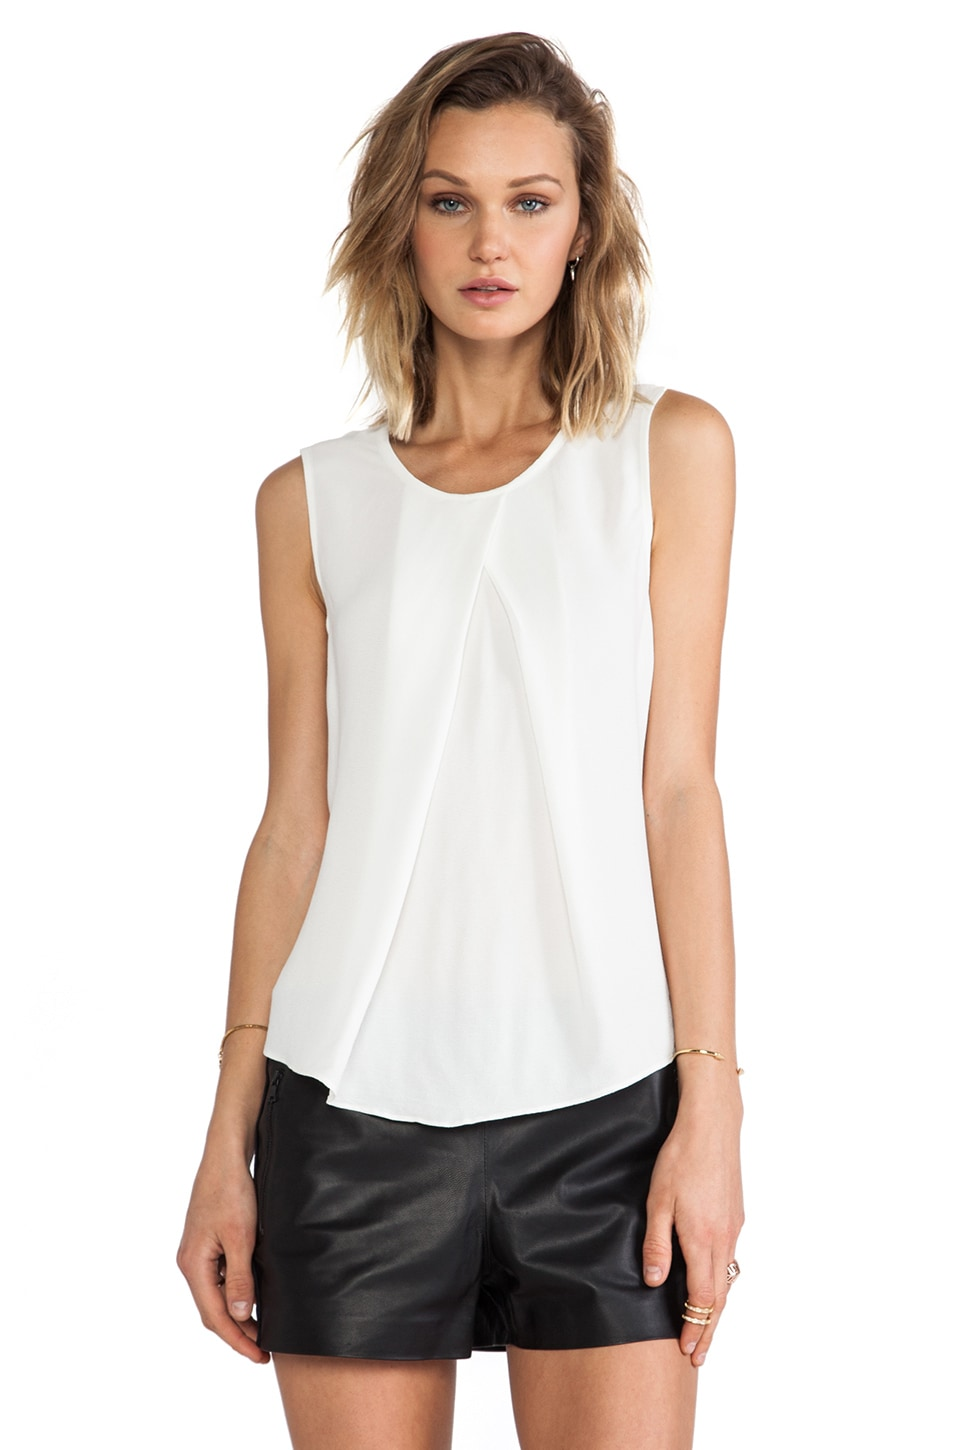 Backstage Audrey Top in Ivory